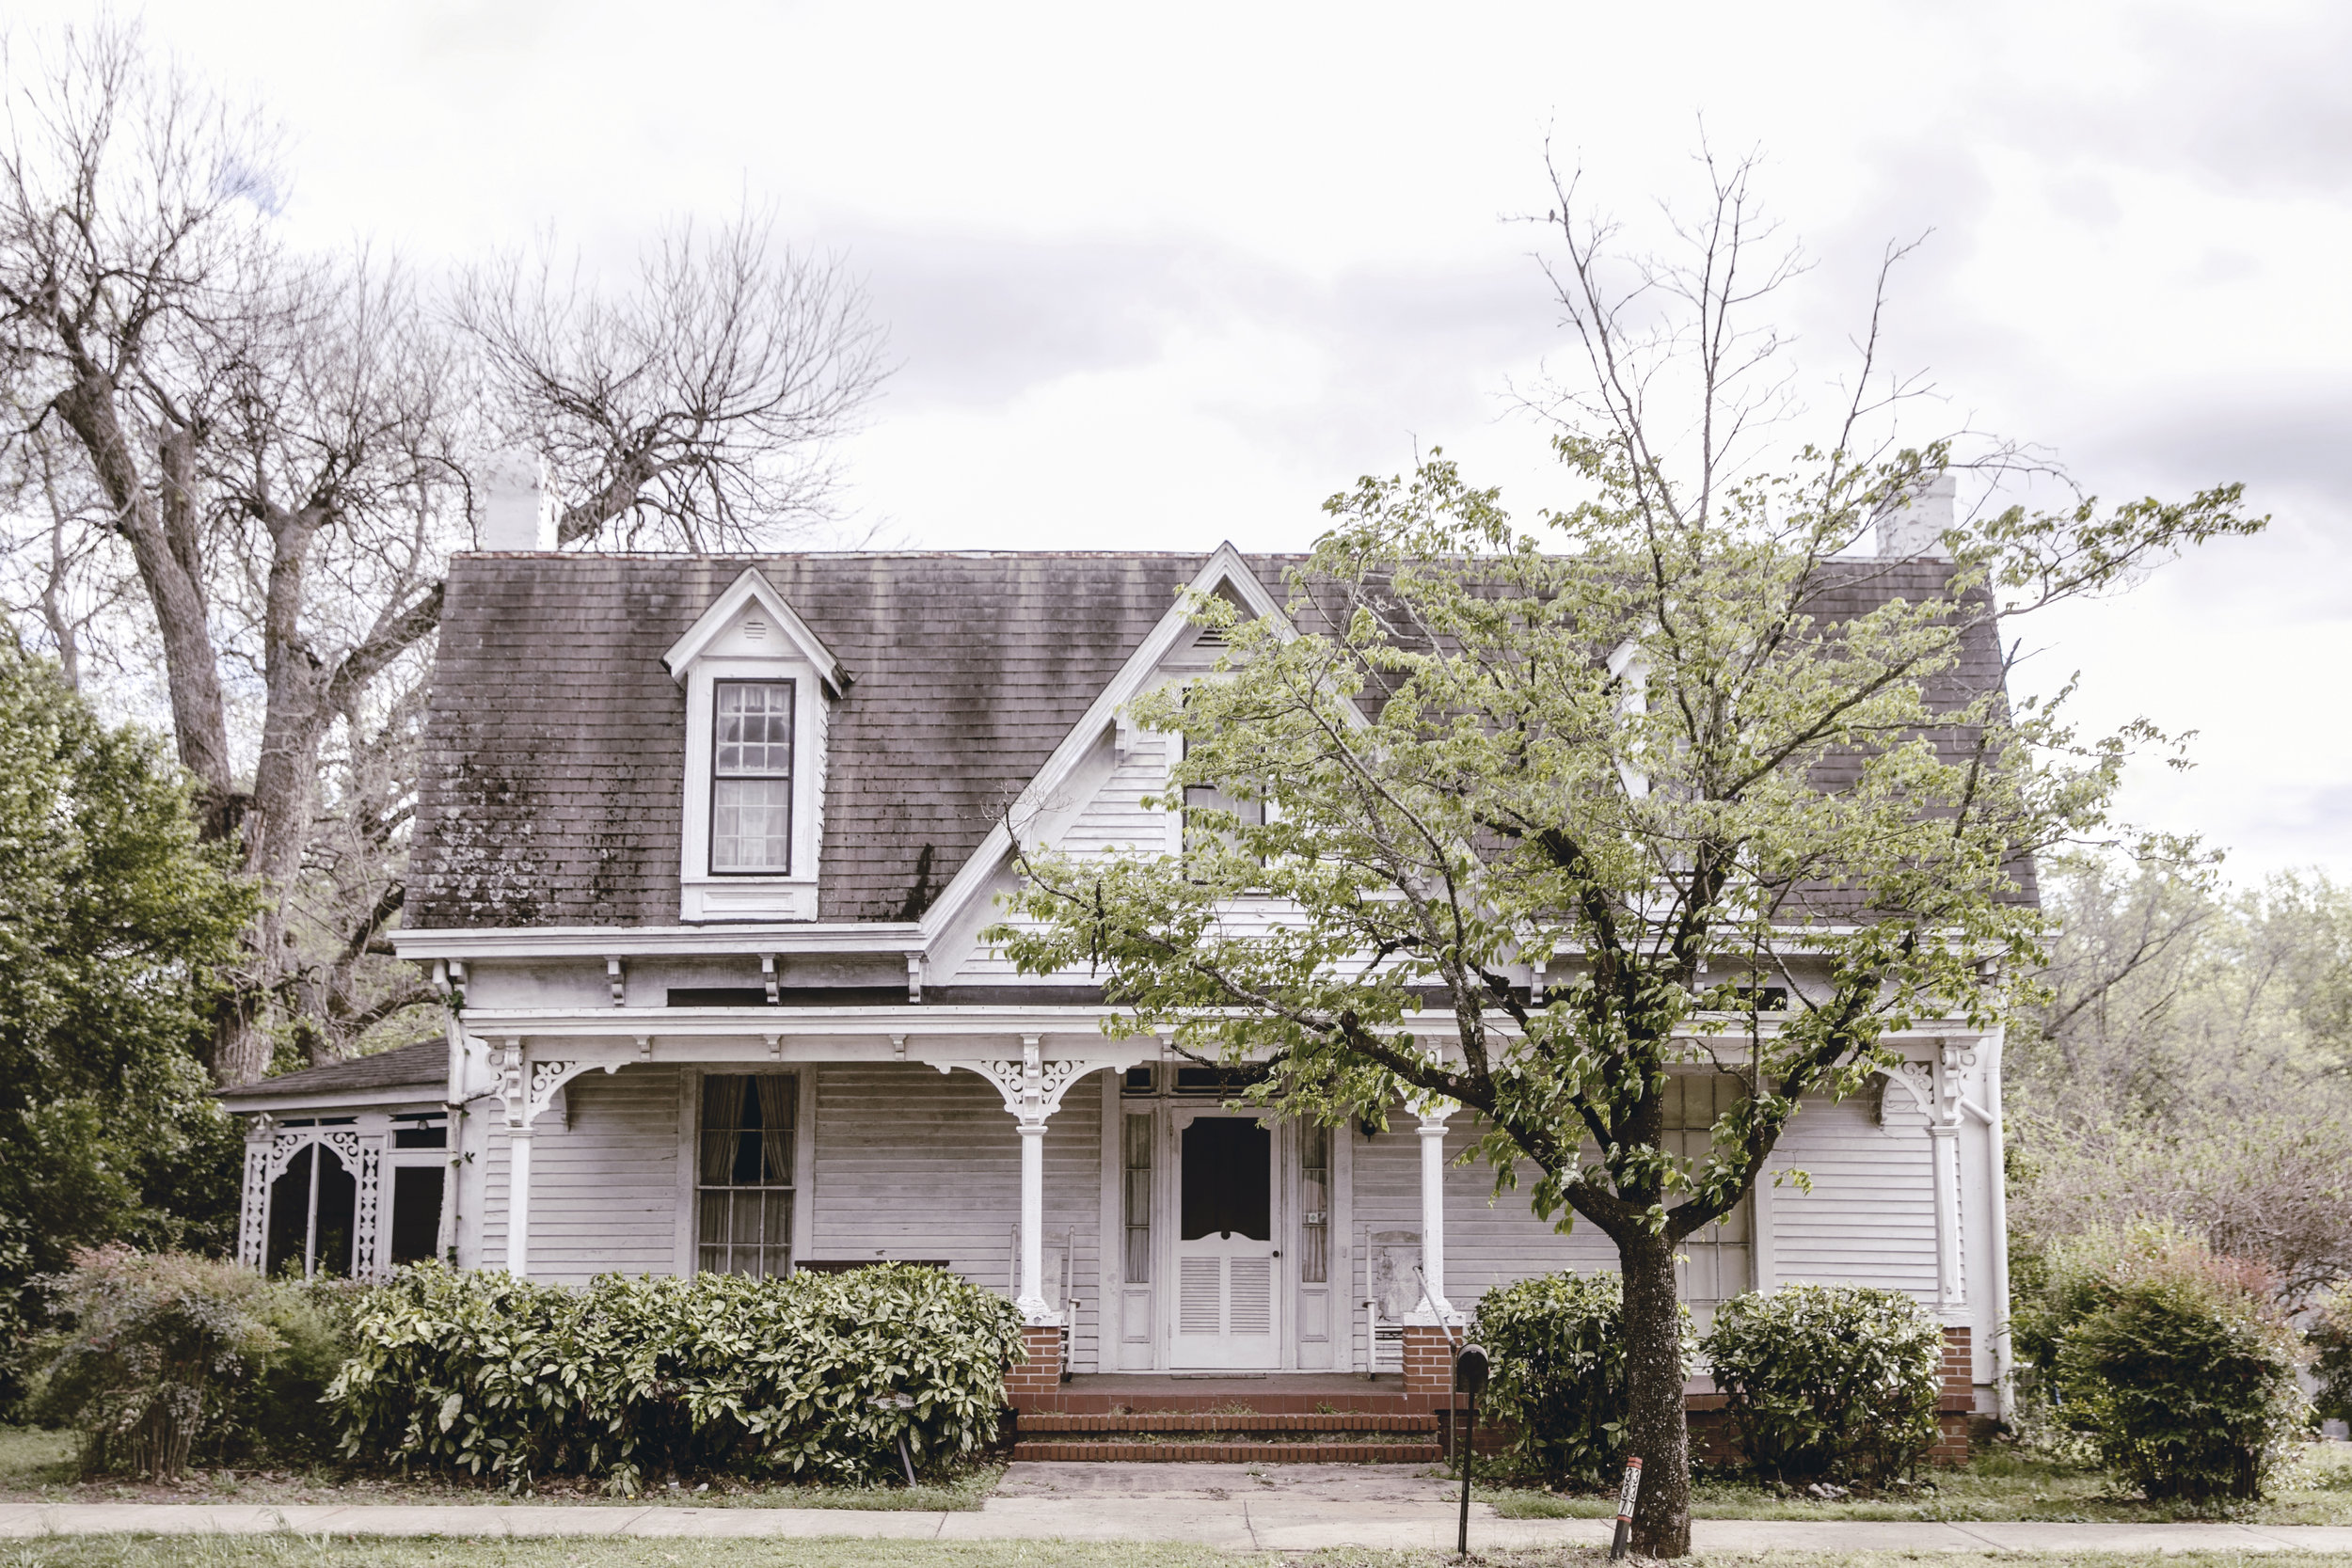 charming white southern historic farm house in Monticello GA / heirloomed